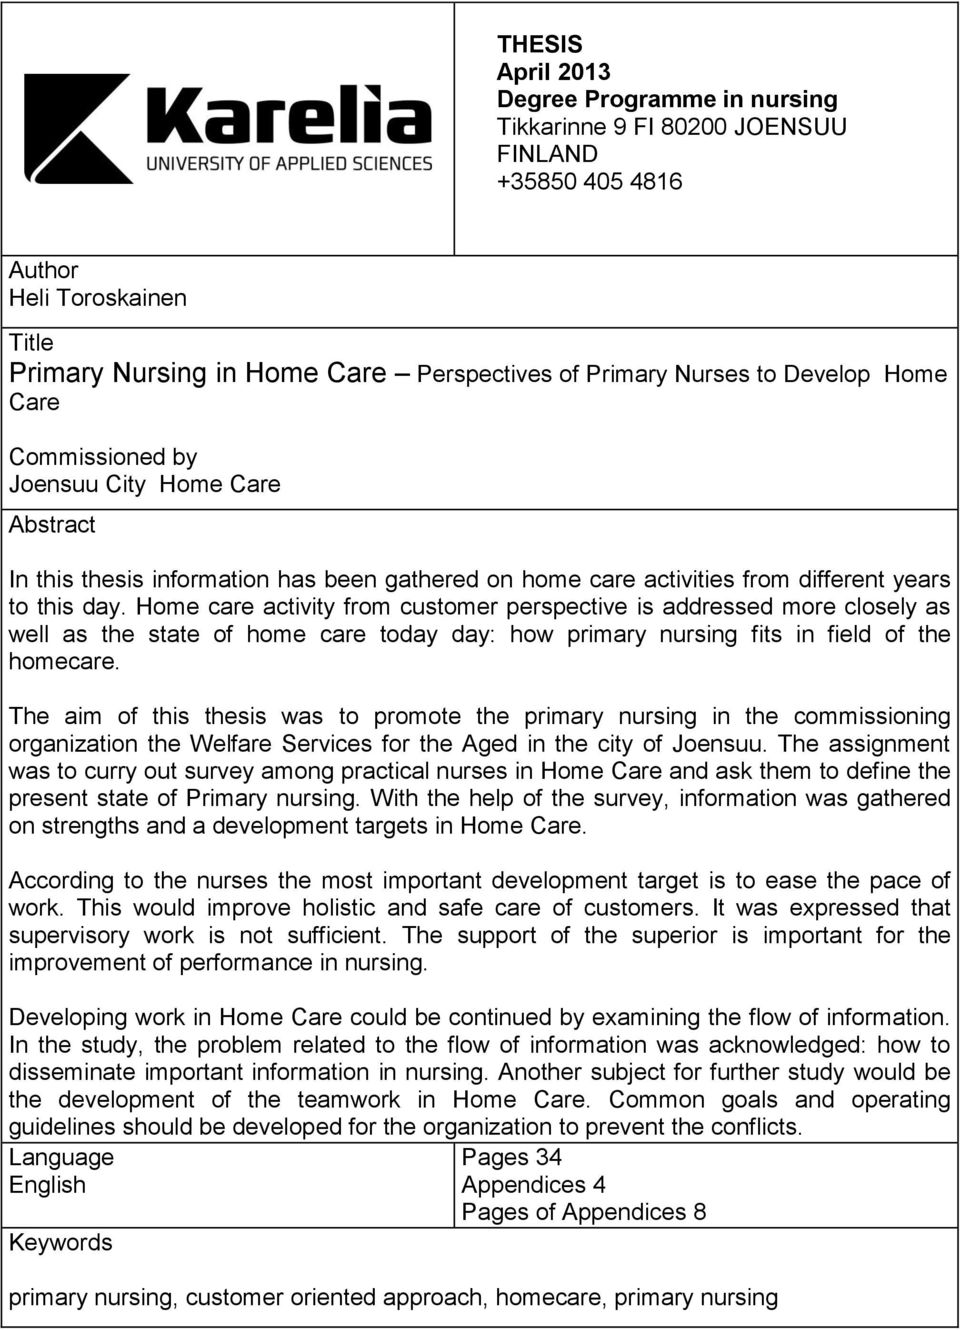 Home care activity from customer perspective is addressed more closely as well as the state of home care today day: how primary nursing fits in field of the homecare.